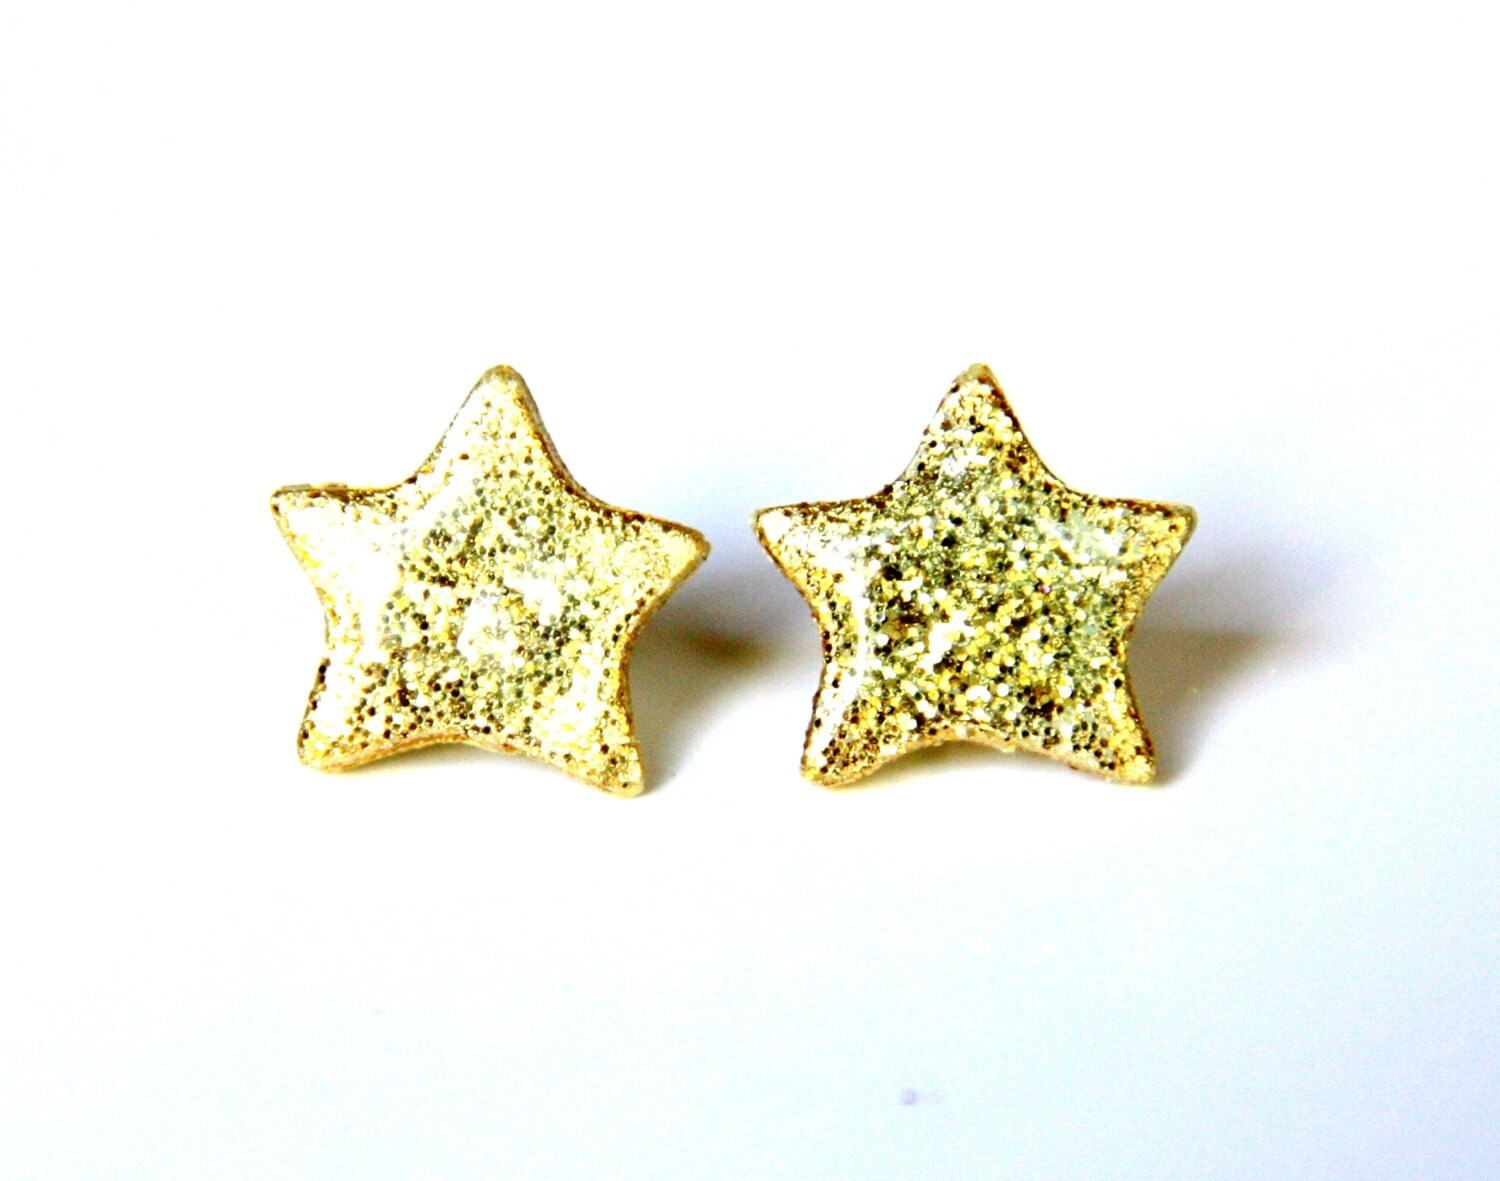 TEACHERS PET Gold Star Earrings Glitter Gold Dust Twinkle night sky Spangled Galaxy resin polymer clay - JeuneMariee